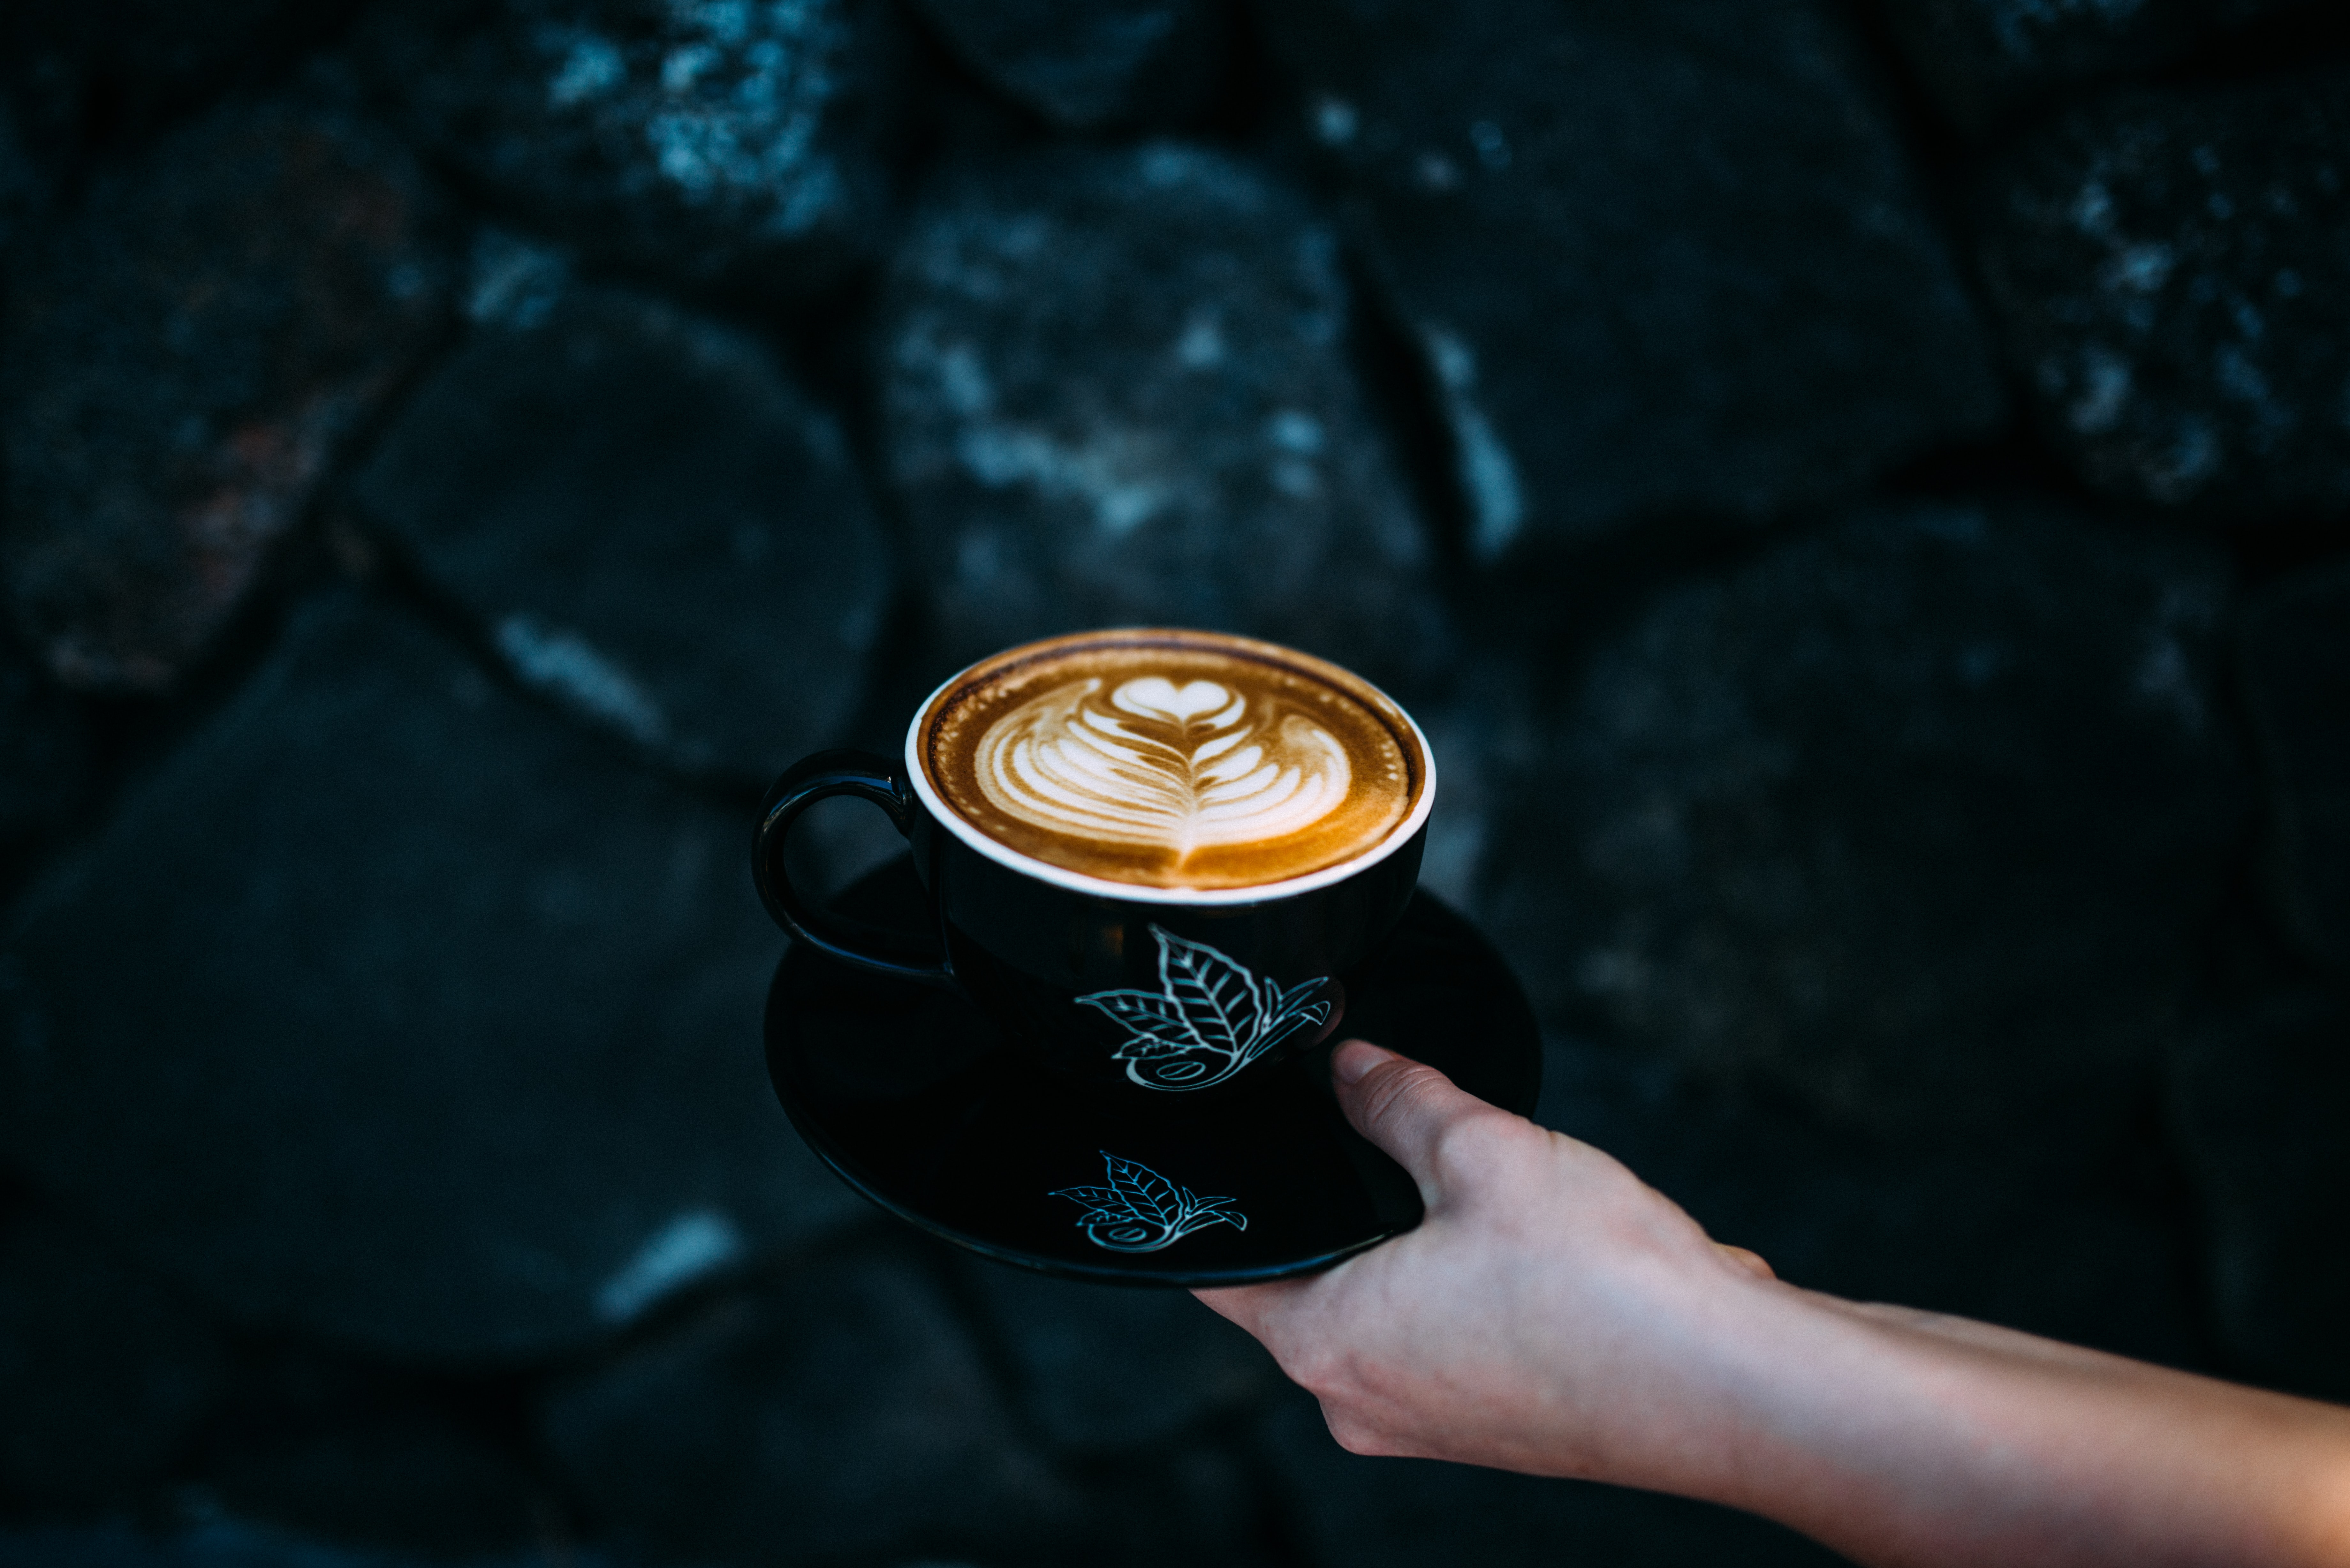 person holding teacup with cappuccino